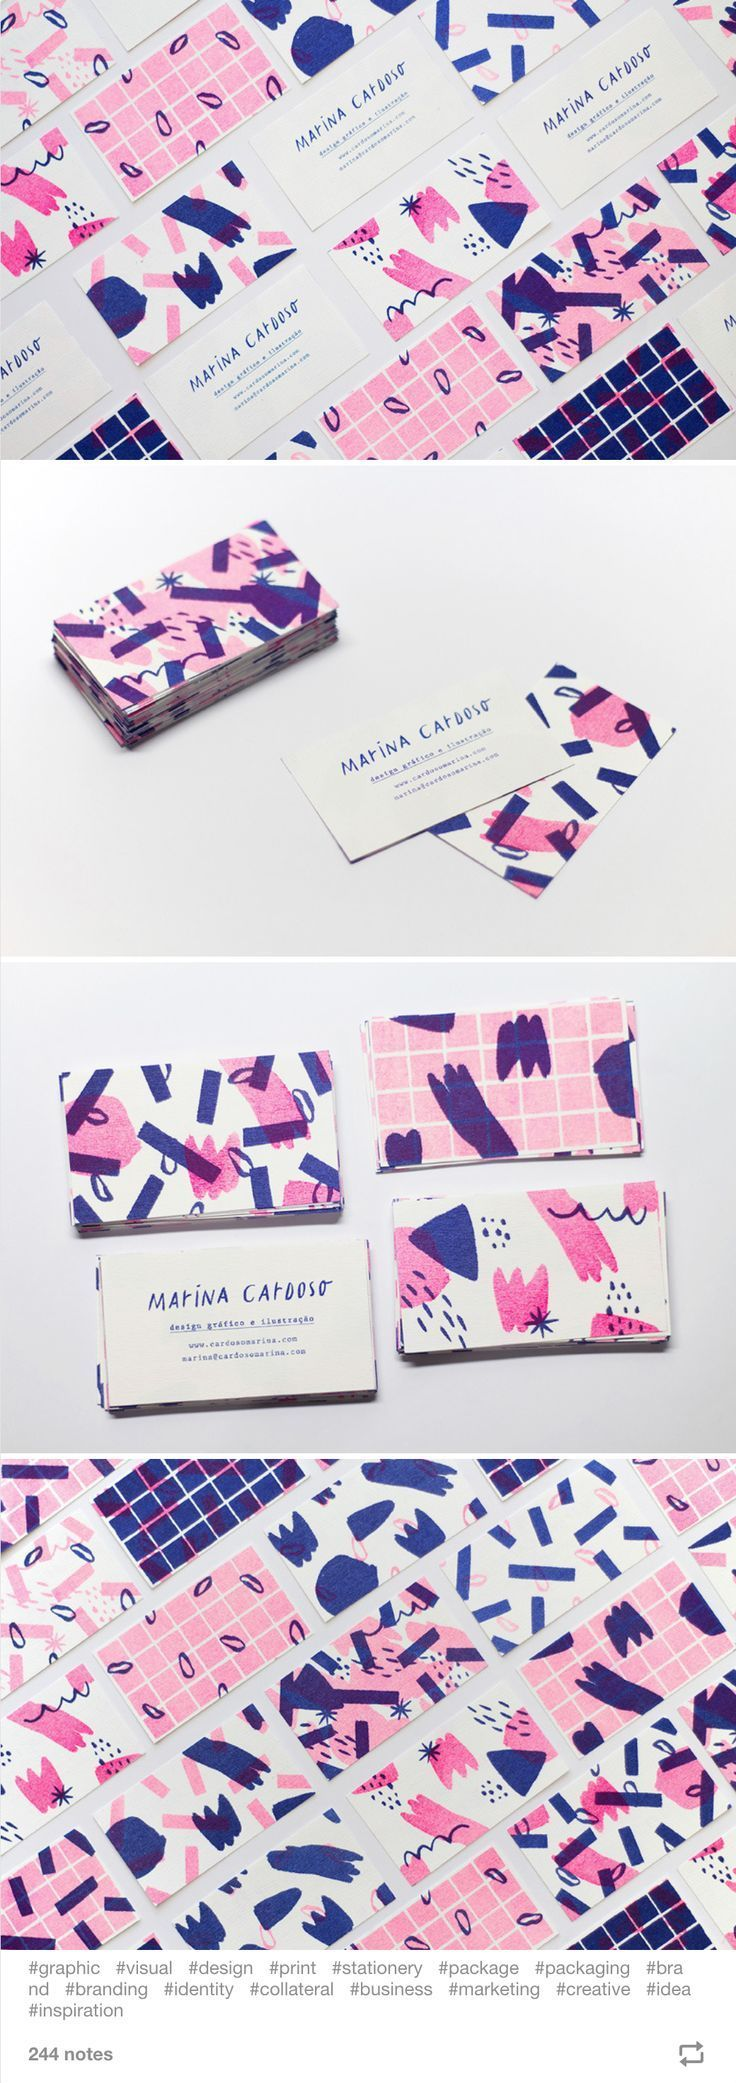 graphic visual design print stationery package packaging brand branding identity collateral business marketing creative idea inspiration